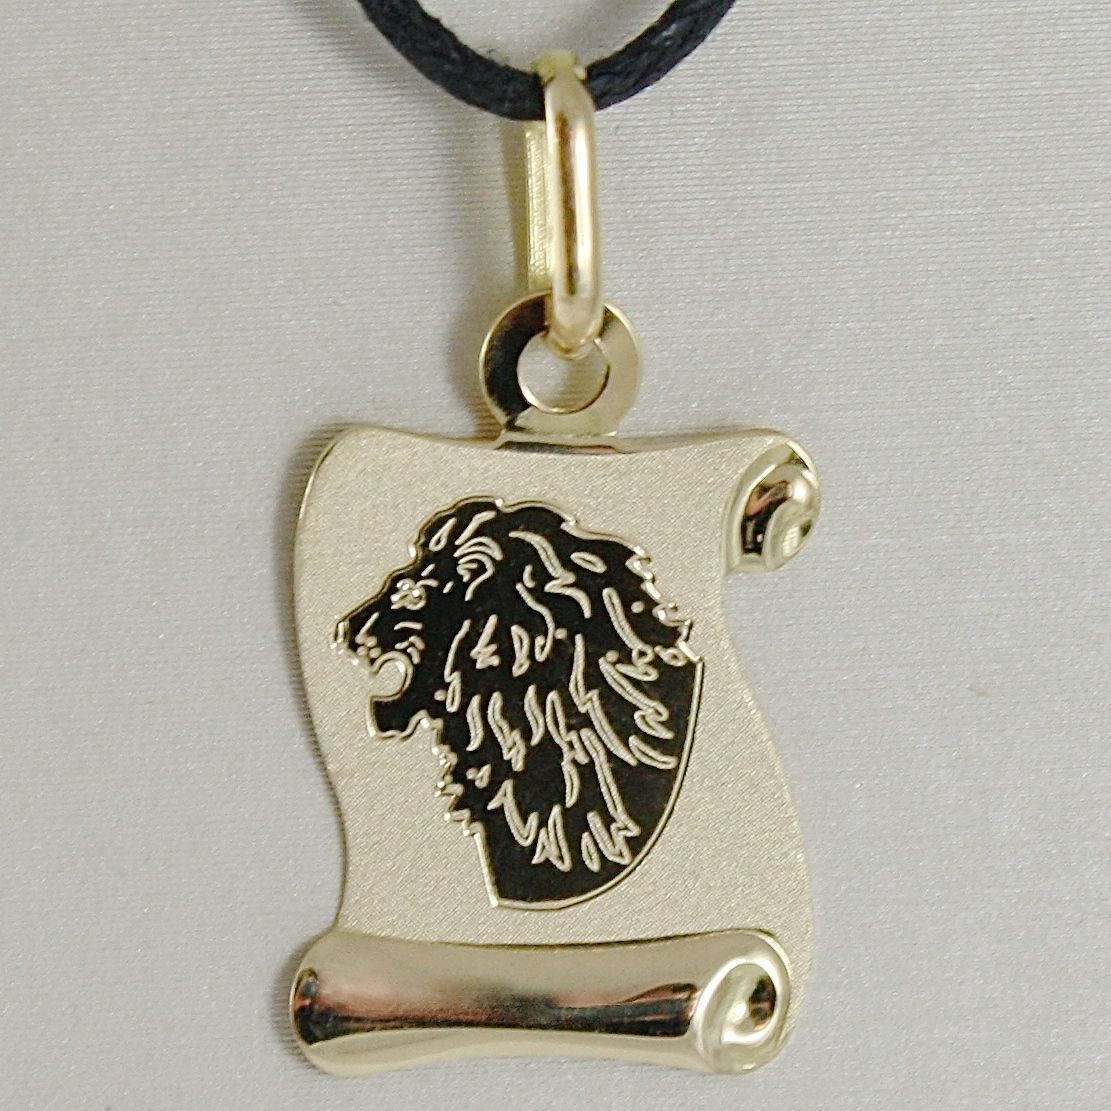 18K YELLOW GOLD ZODIAC SIGN MEDAL, LEO, LION PARCHMENT ENGRAVABLE MADE IN ITALY